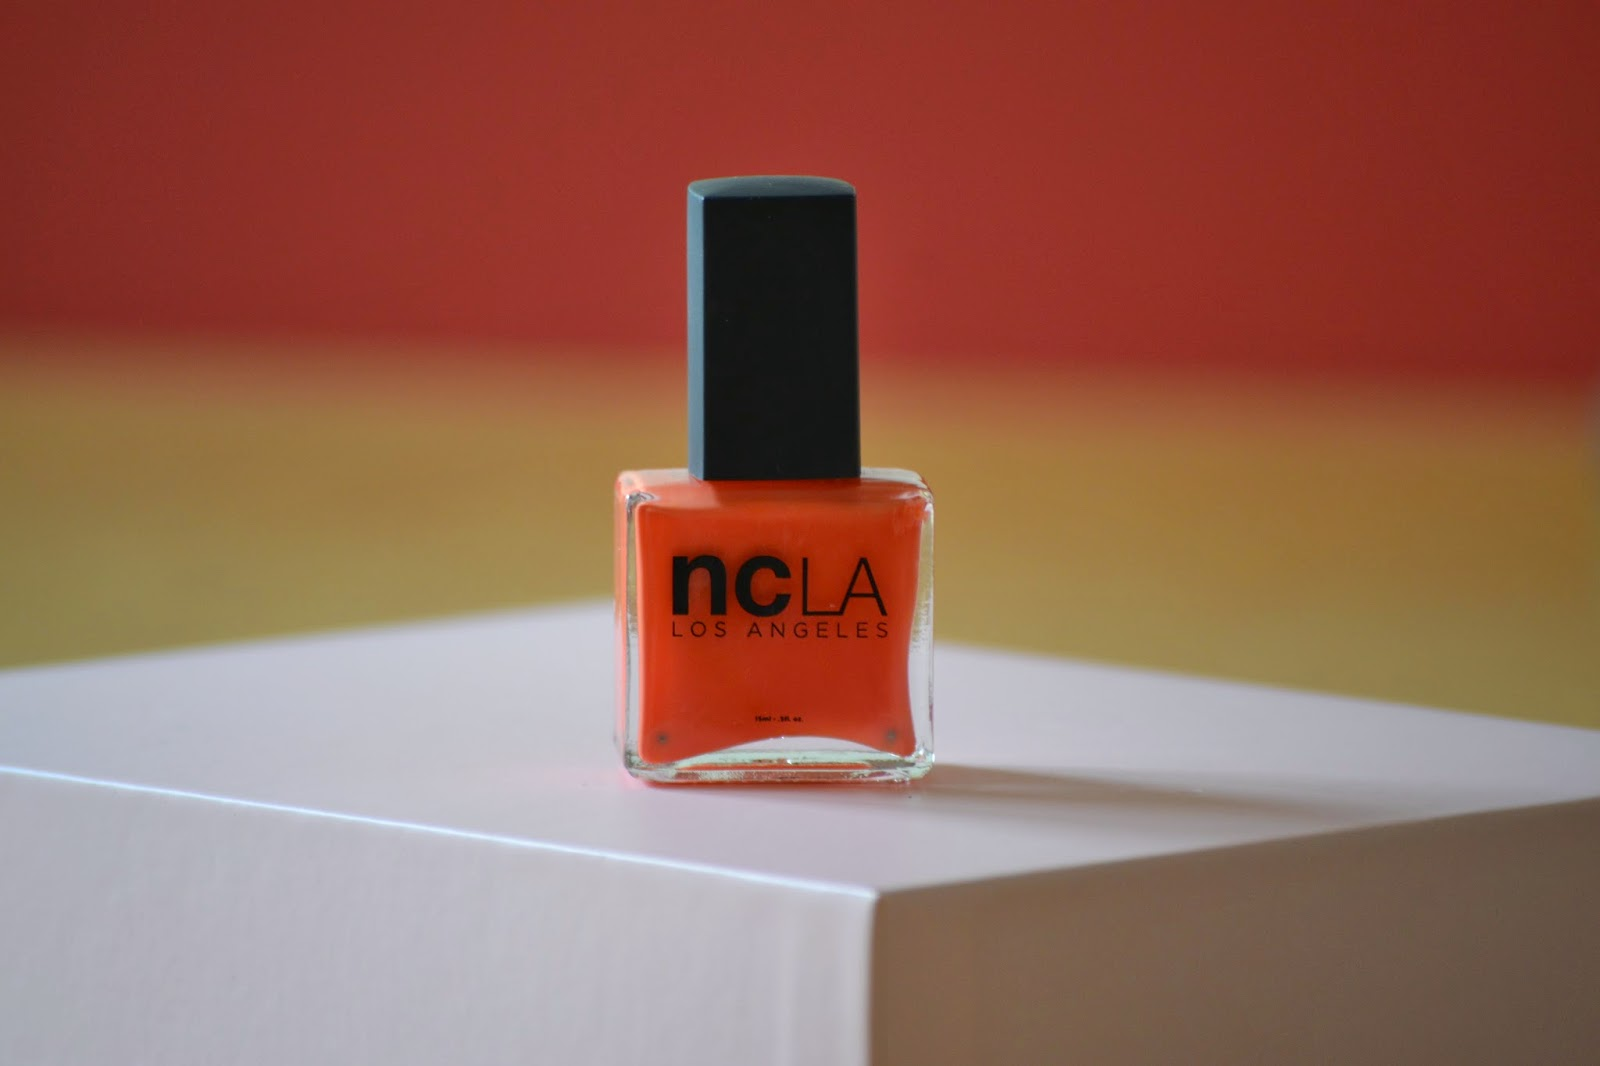 ncLA nail varnish